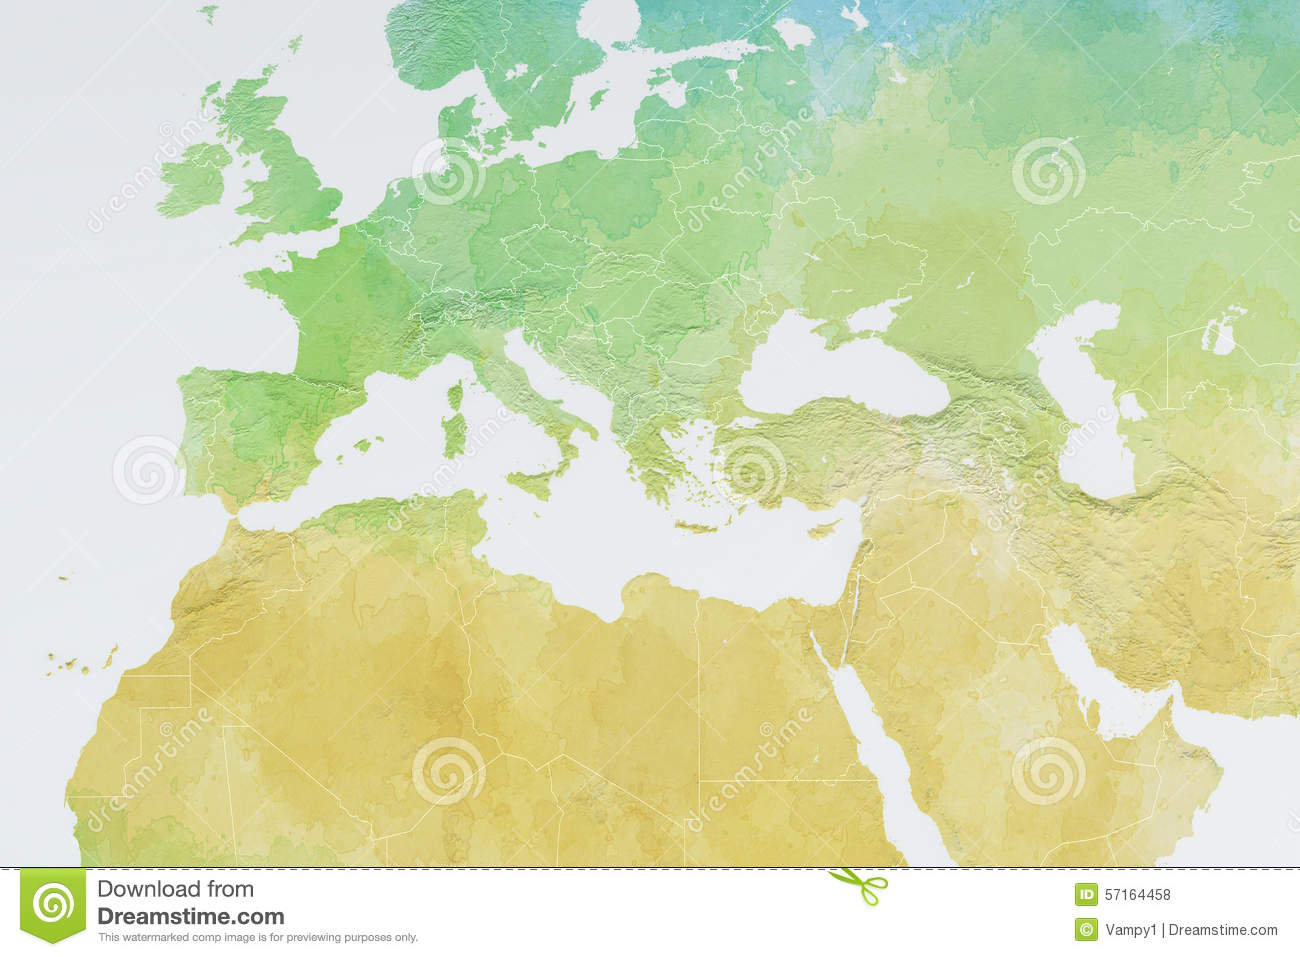 Europe - Physical Map Stock Vector - Image: 67598980